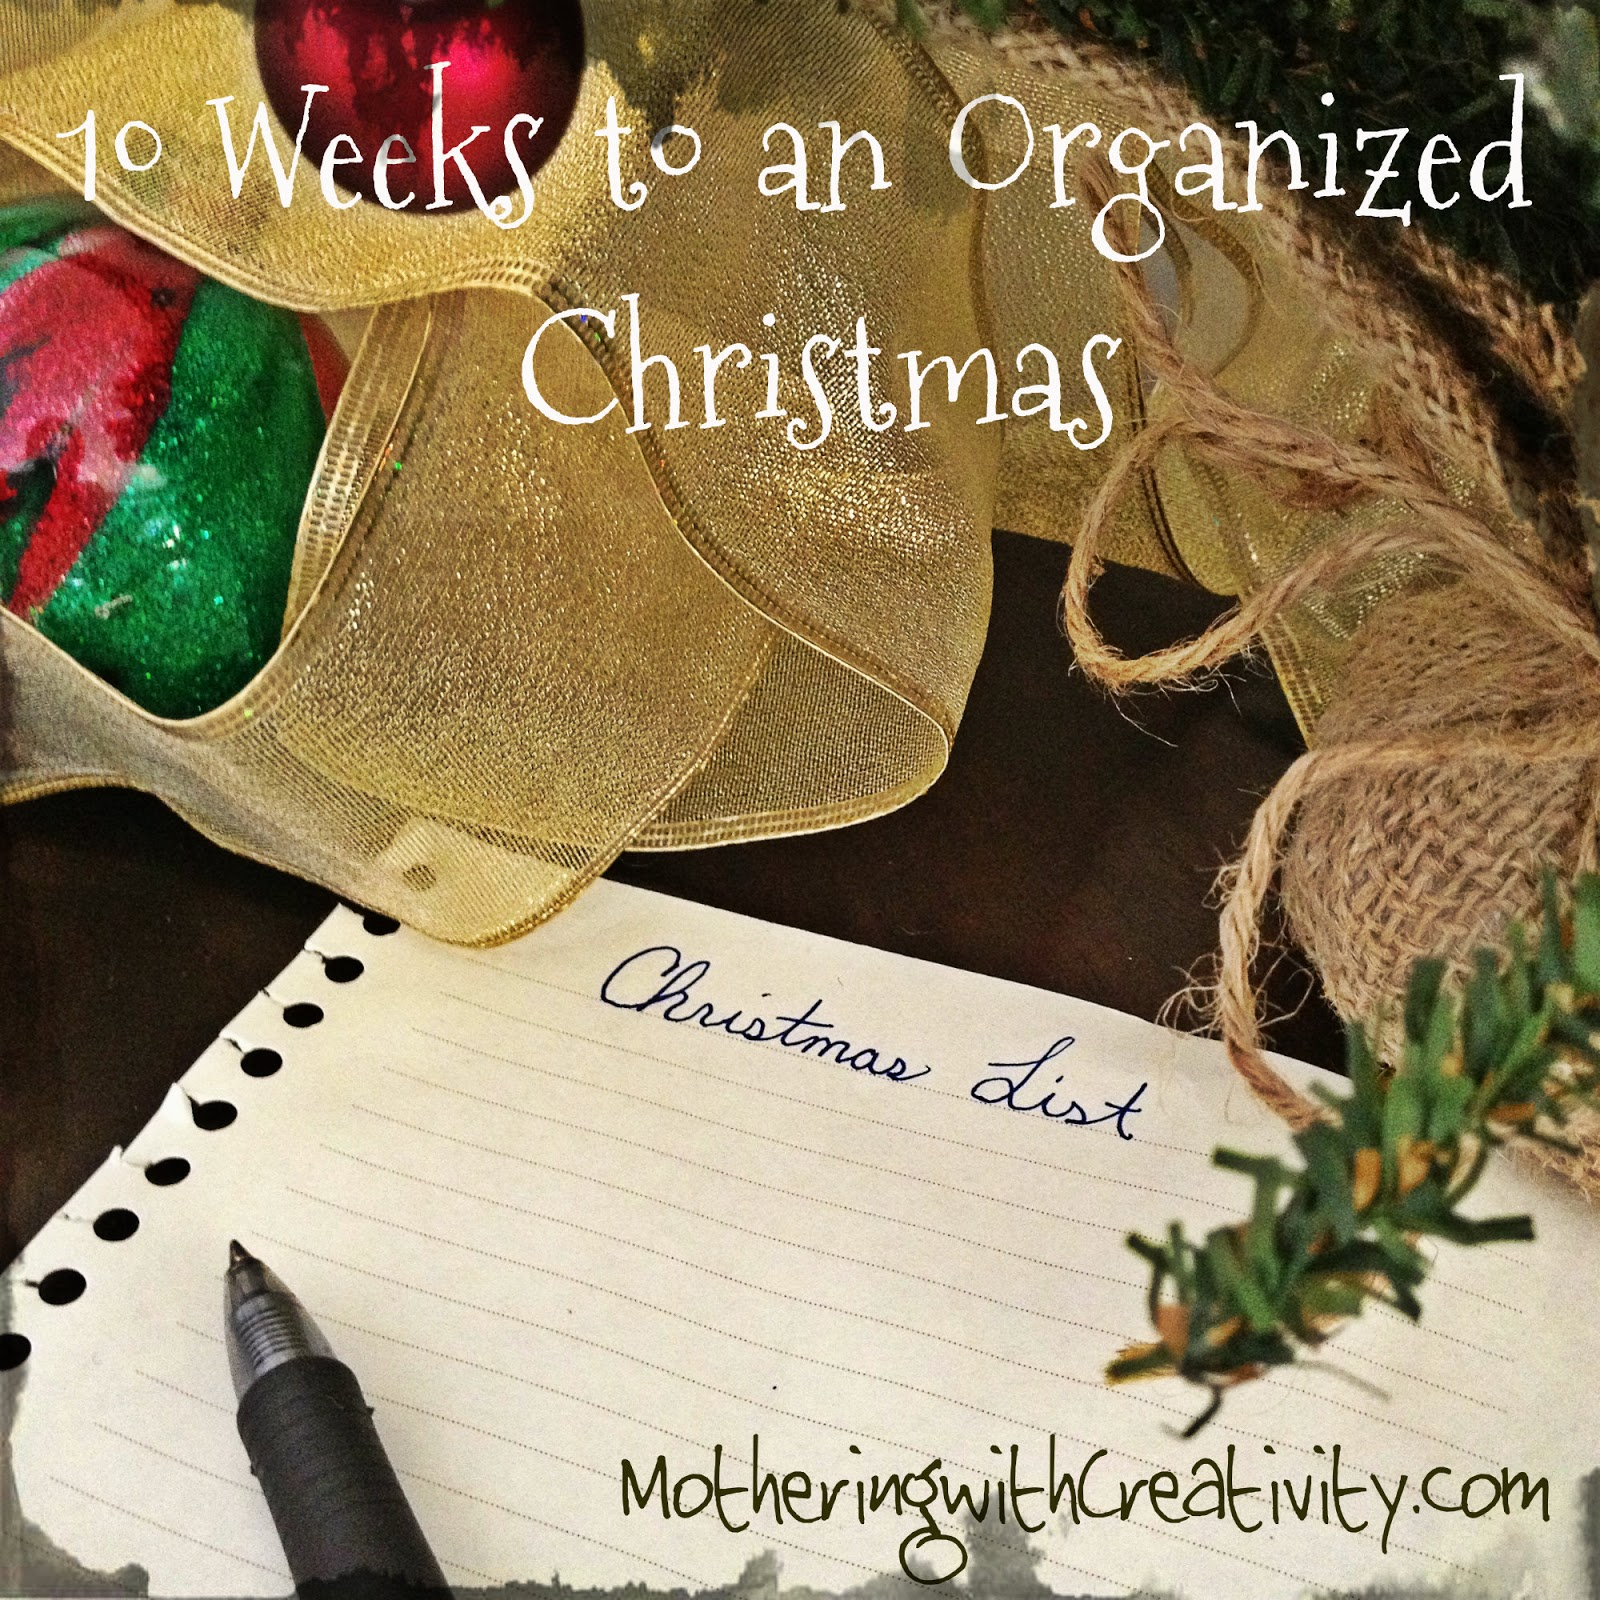 Until Christmas 10 Weeks Till Christmas.Mothering With Creativity 10 Weeks To An Organized Christmas